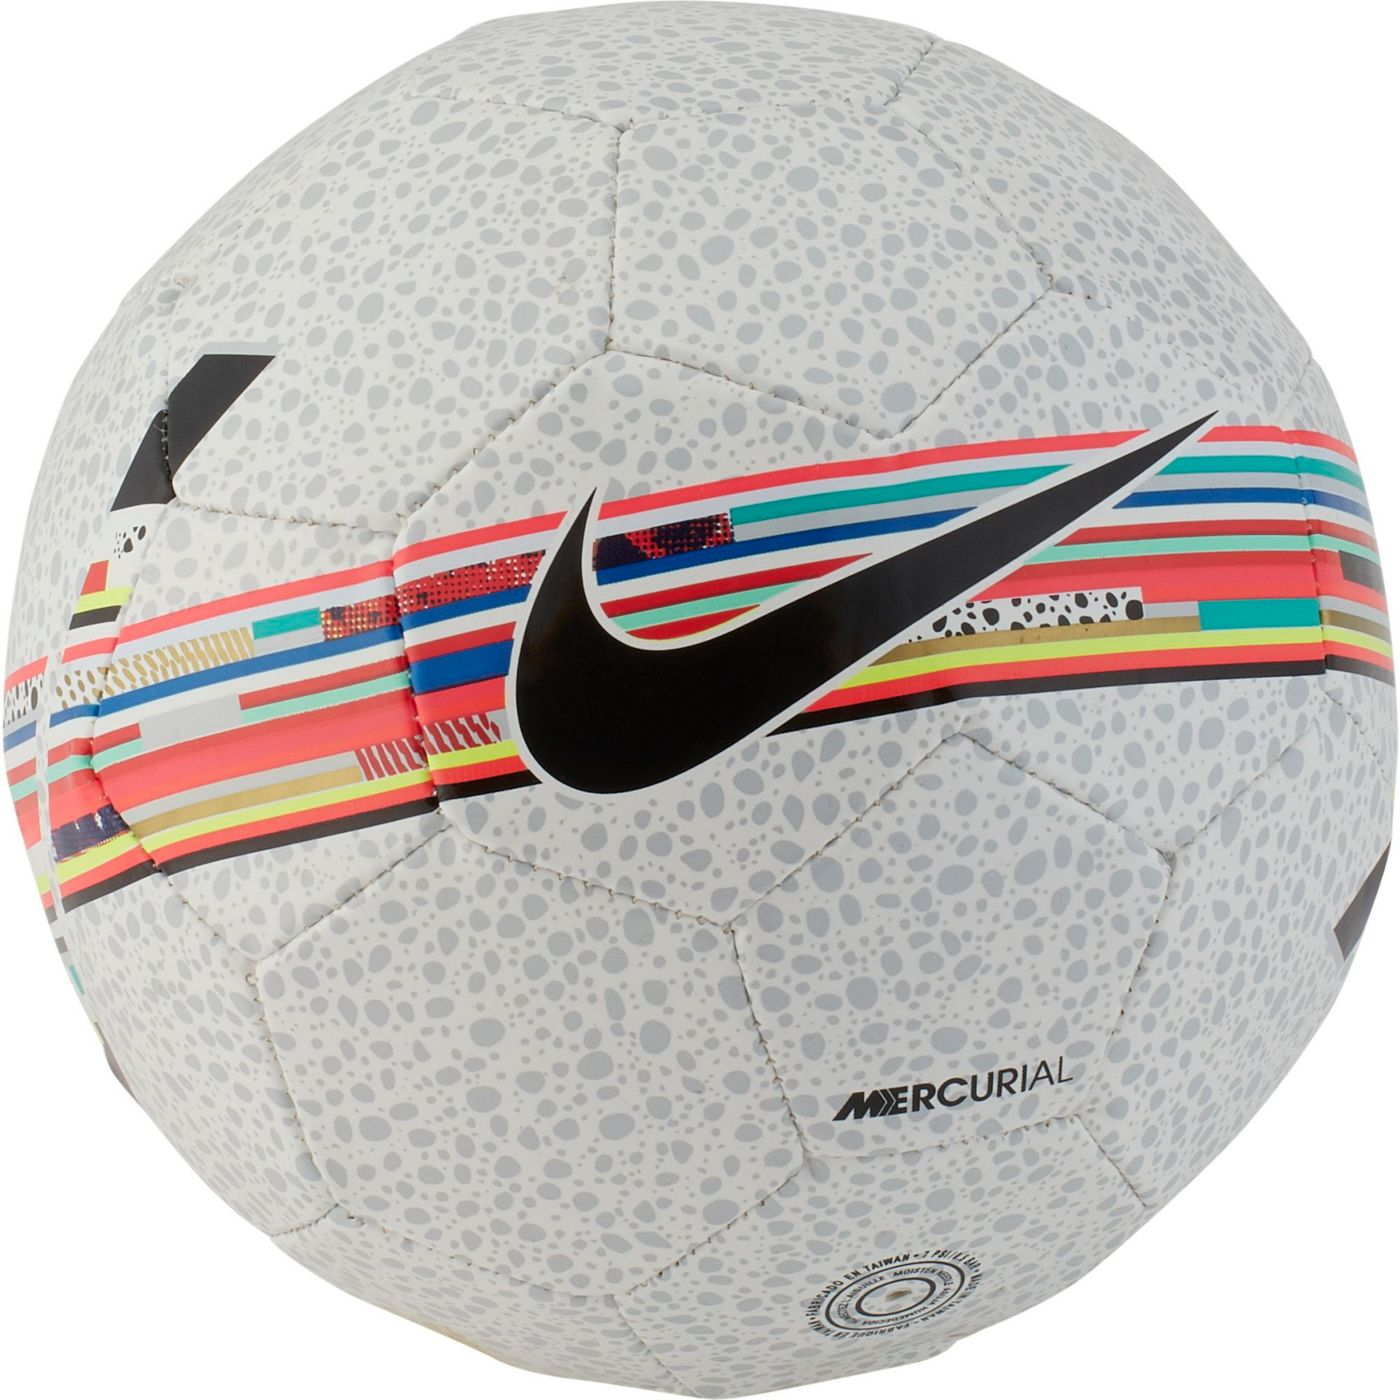 Nike CR7 Mini Soccer Ball